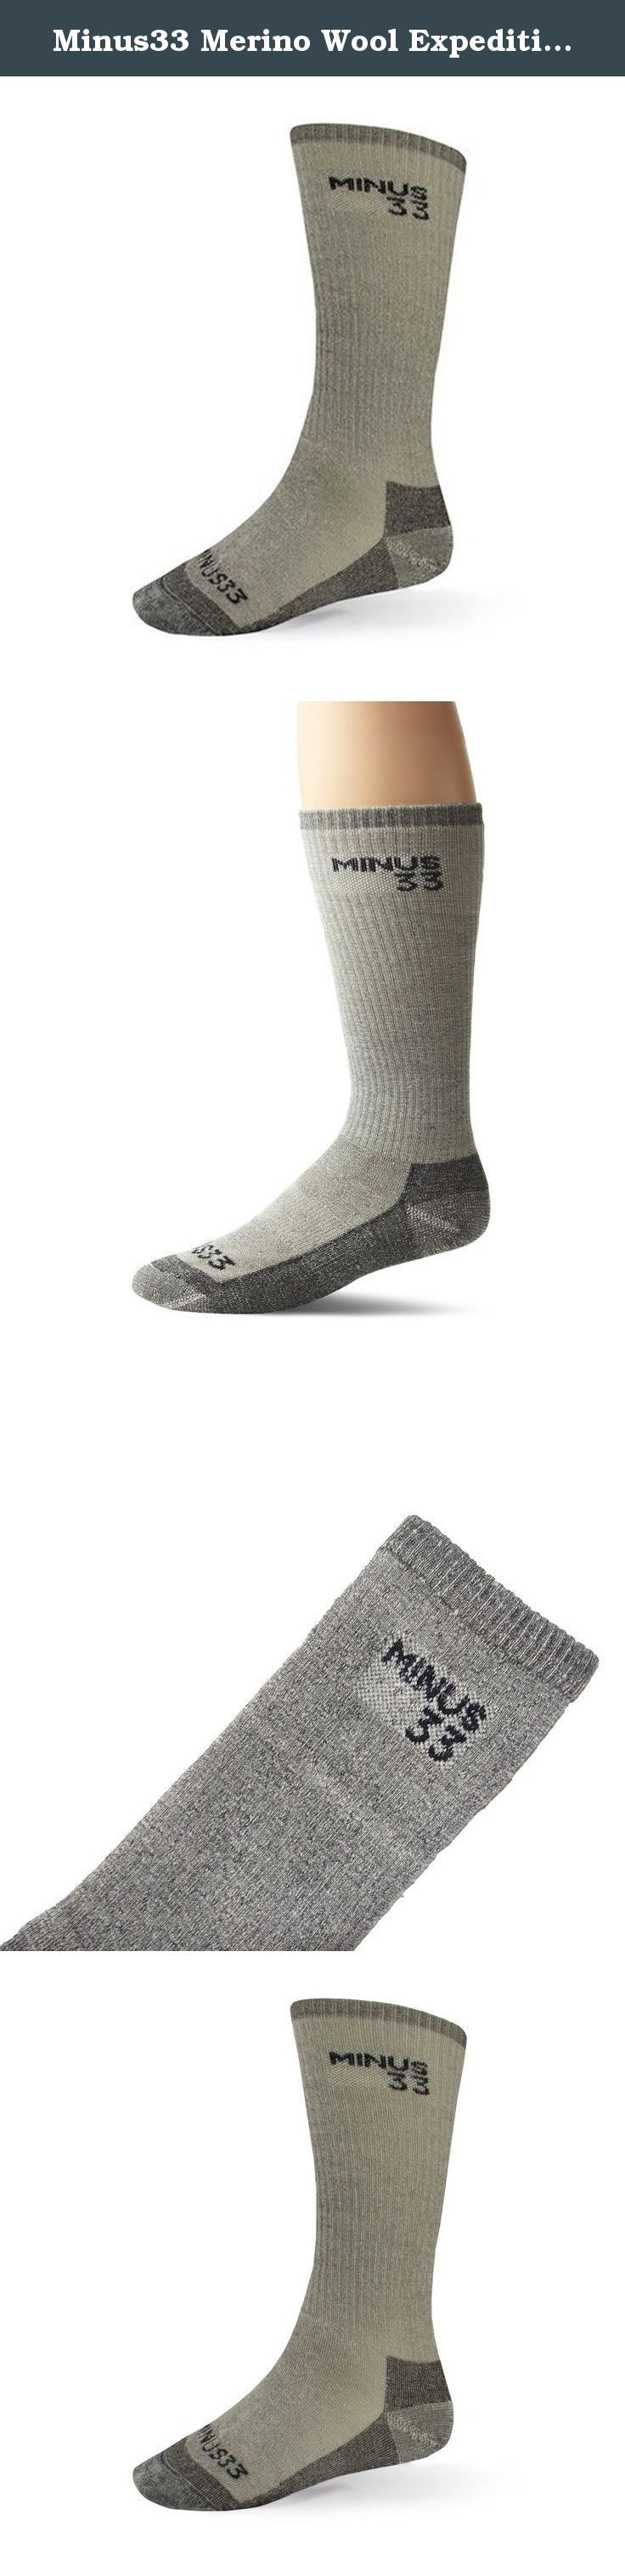 Minus33 Merino Wool Expedition Mountaineer Sock, Grey Heather, Large. Accessories are the finishing details that complete an outfit. Our accessories compliment the warmth and comfort you've come to expect from Minus33 Merino Wool. We have Balaclavas, Hats